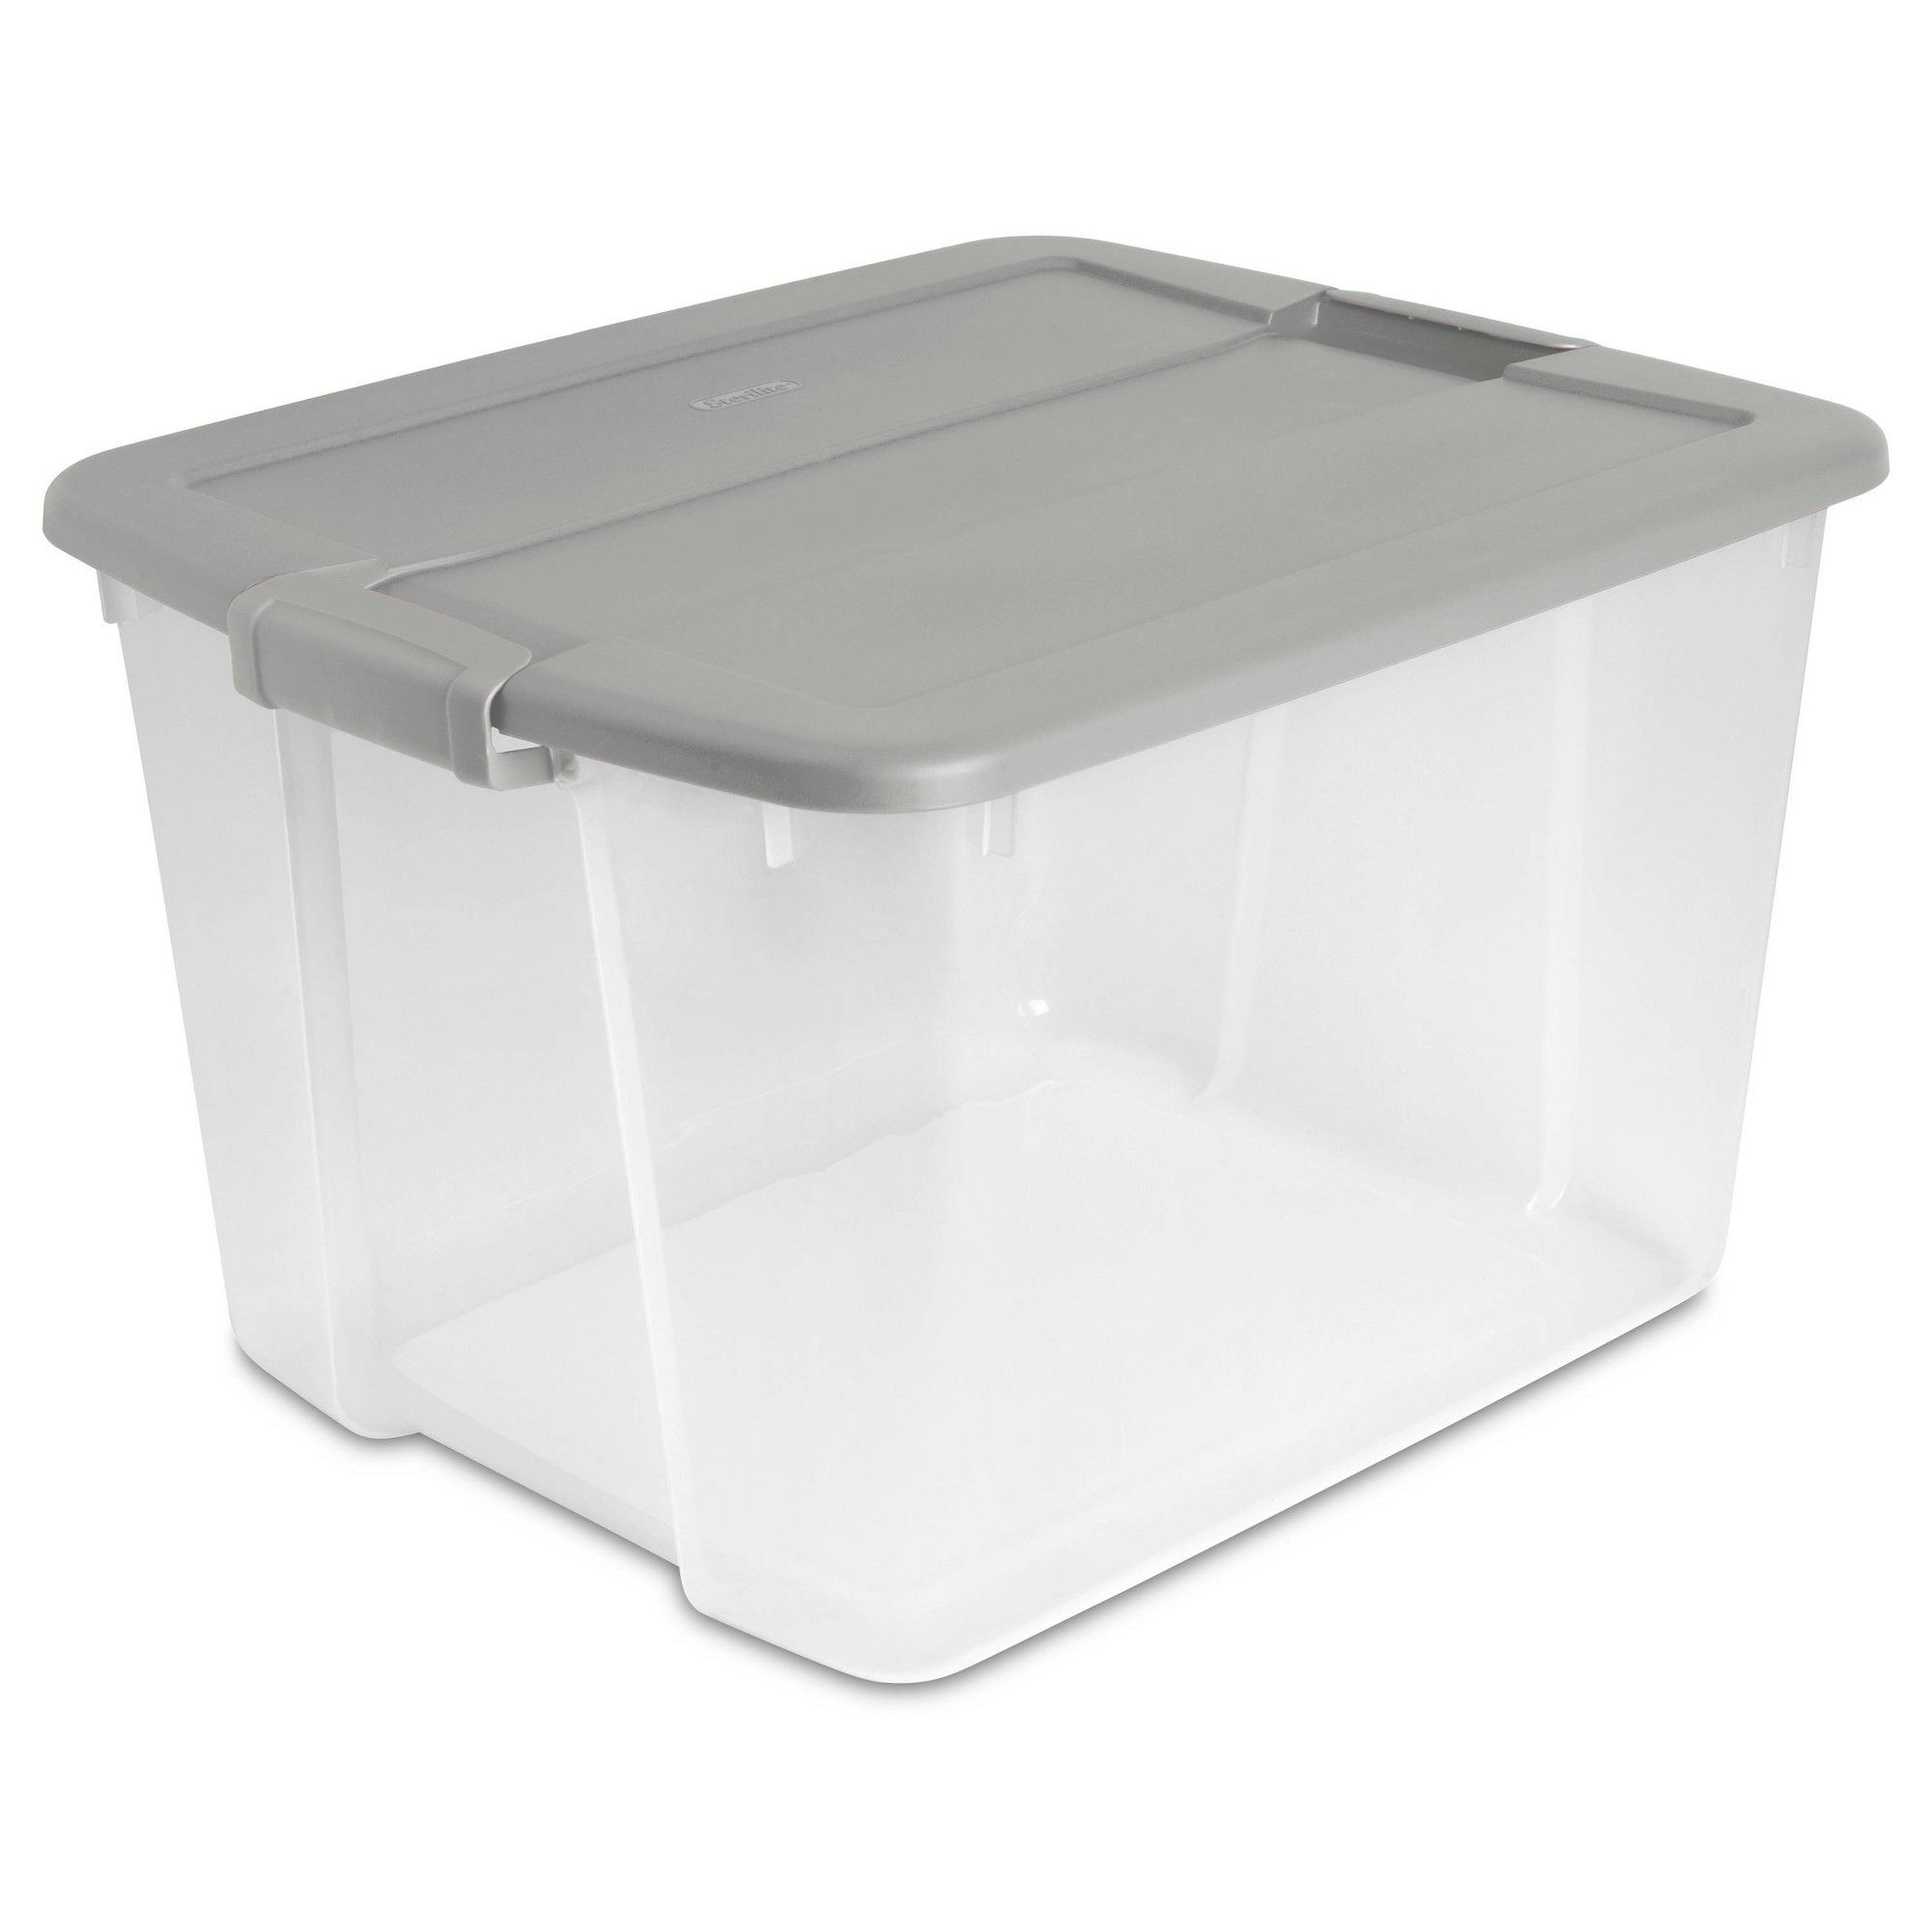 66qt Latch Box Clear With Cement Lid And Latches Room Essentials Gray Storage Tubs Room Essentials Storage Bins With Lids